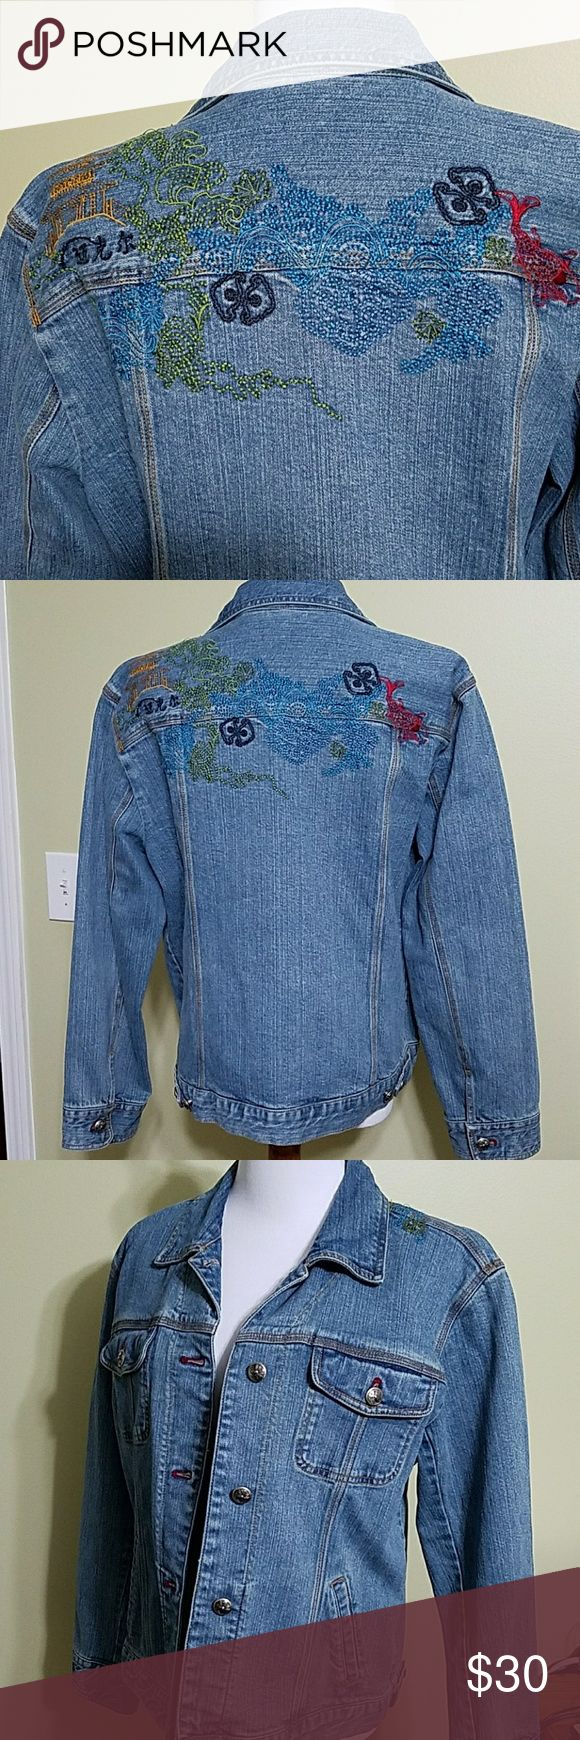 Chico's jean jacket with embroidered back Chico's jean jacket with embroidered back.  In great used condition.  Length is about 22 & 1/2 inches. Bust is about 42 inches. Chico's Jackets & Coats Jean Jackets